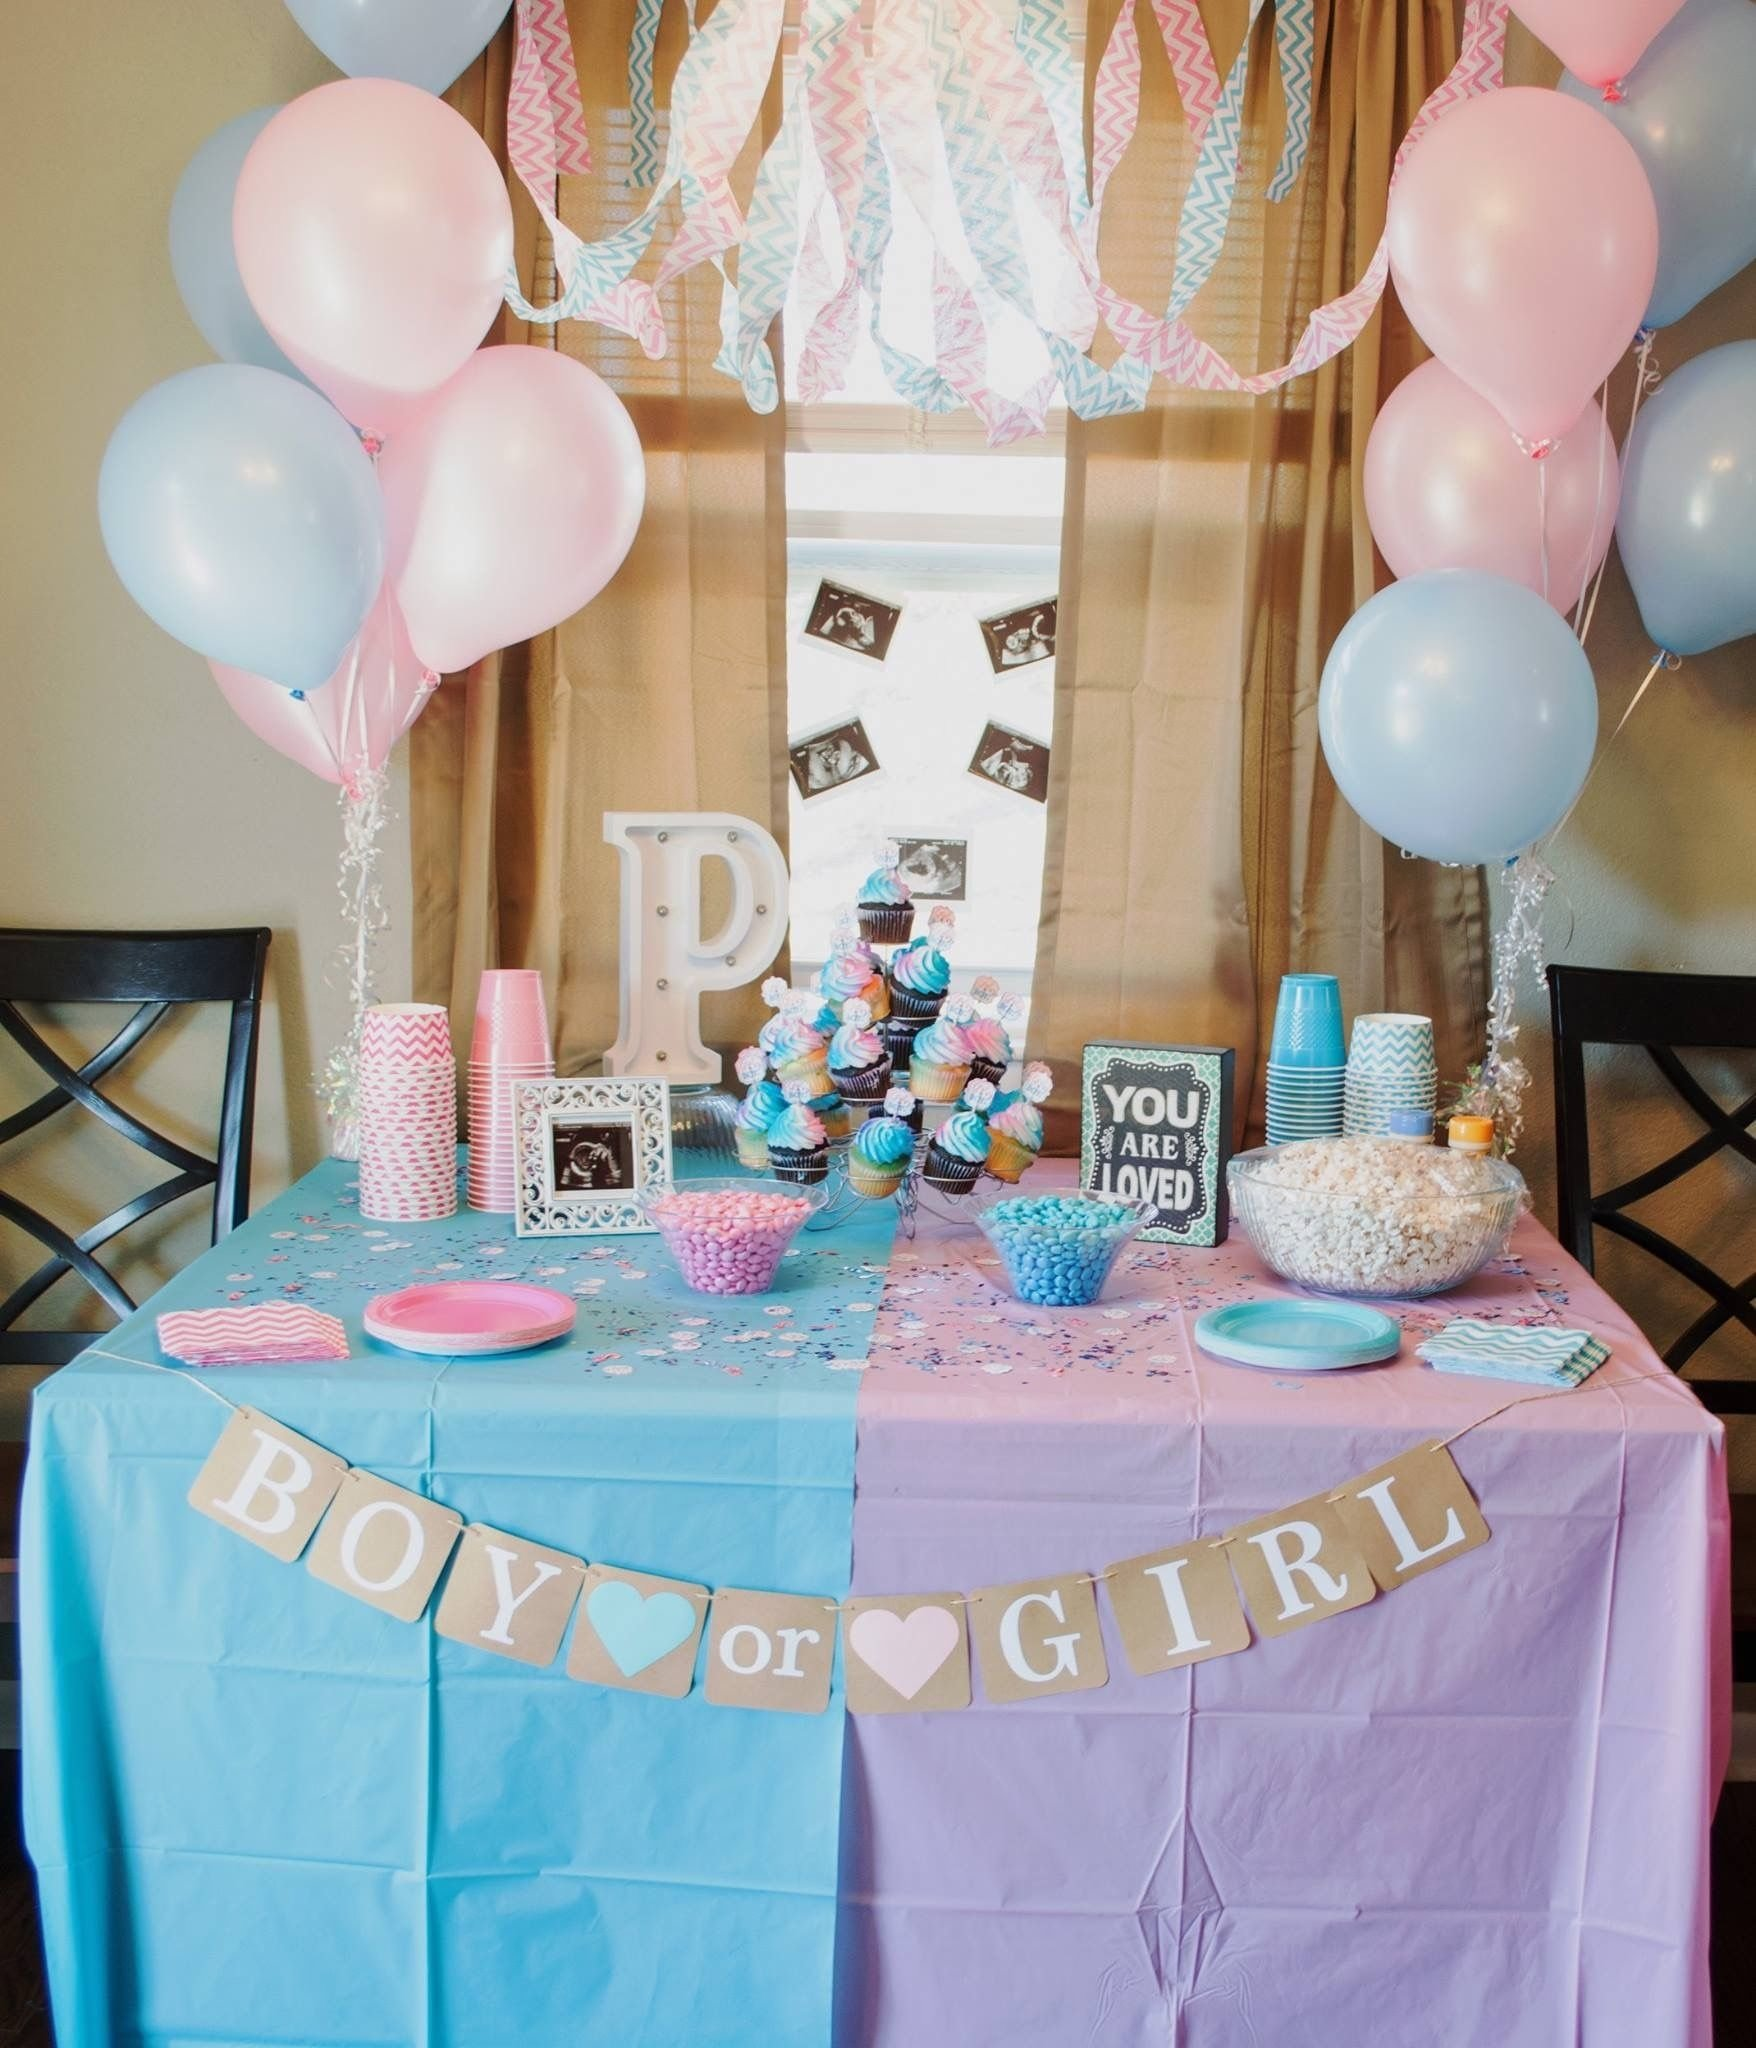 10 Awesome Ideas For Gender Reveal Party 27 gender reveal party food ideas while pregnant gender reveal 1 2020